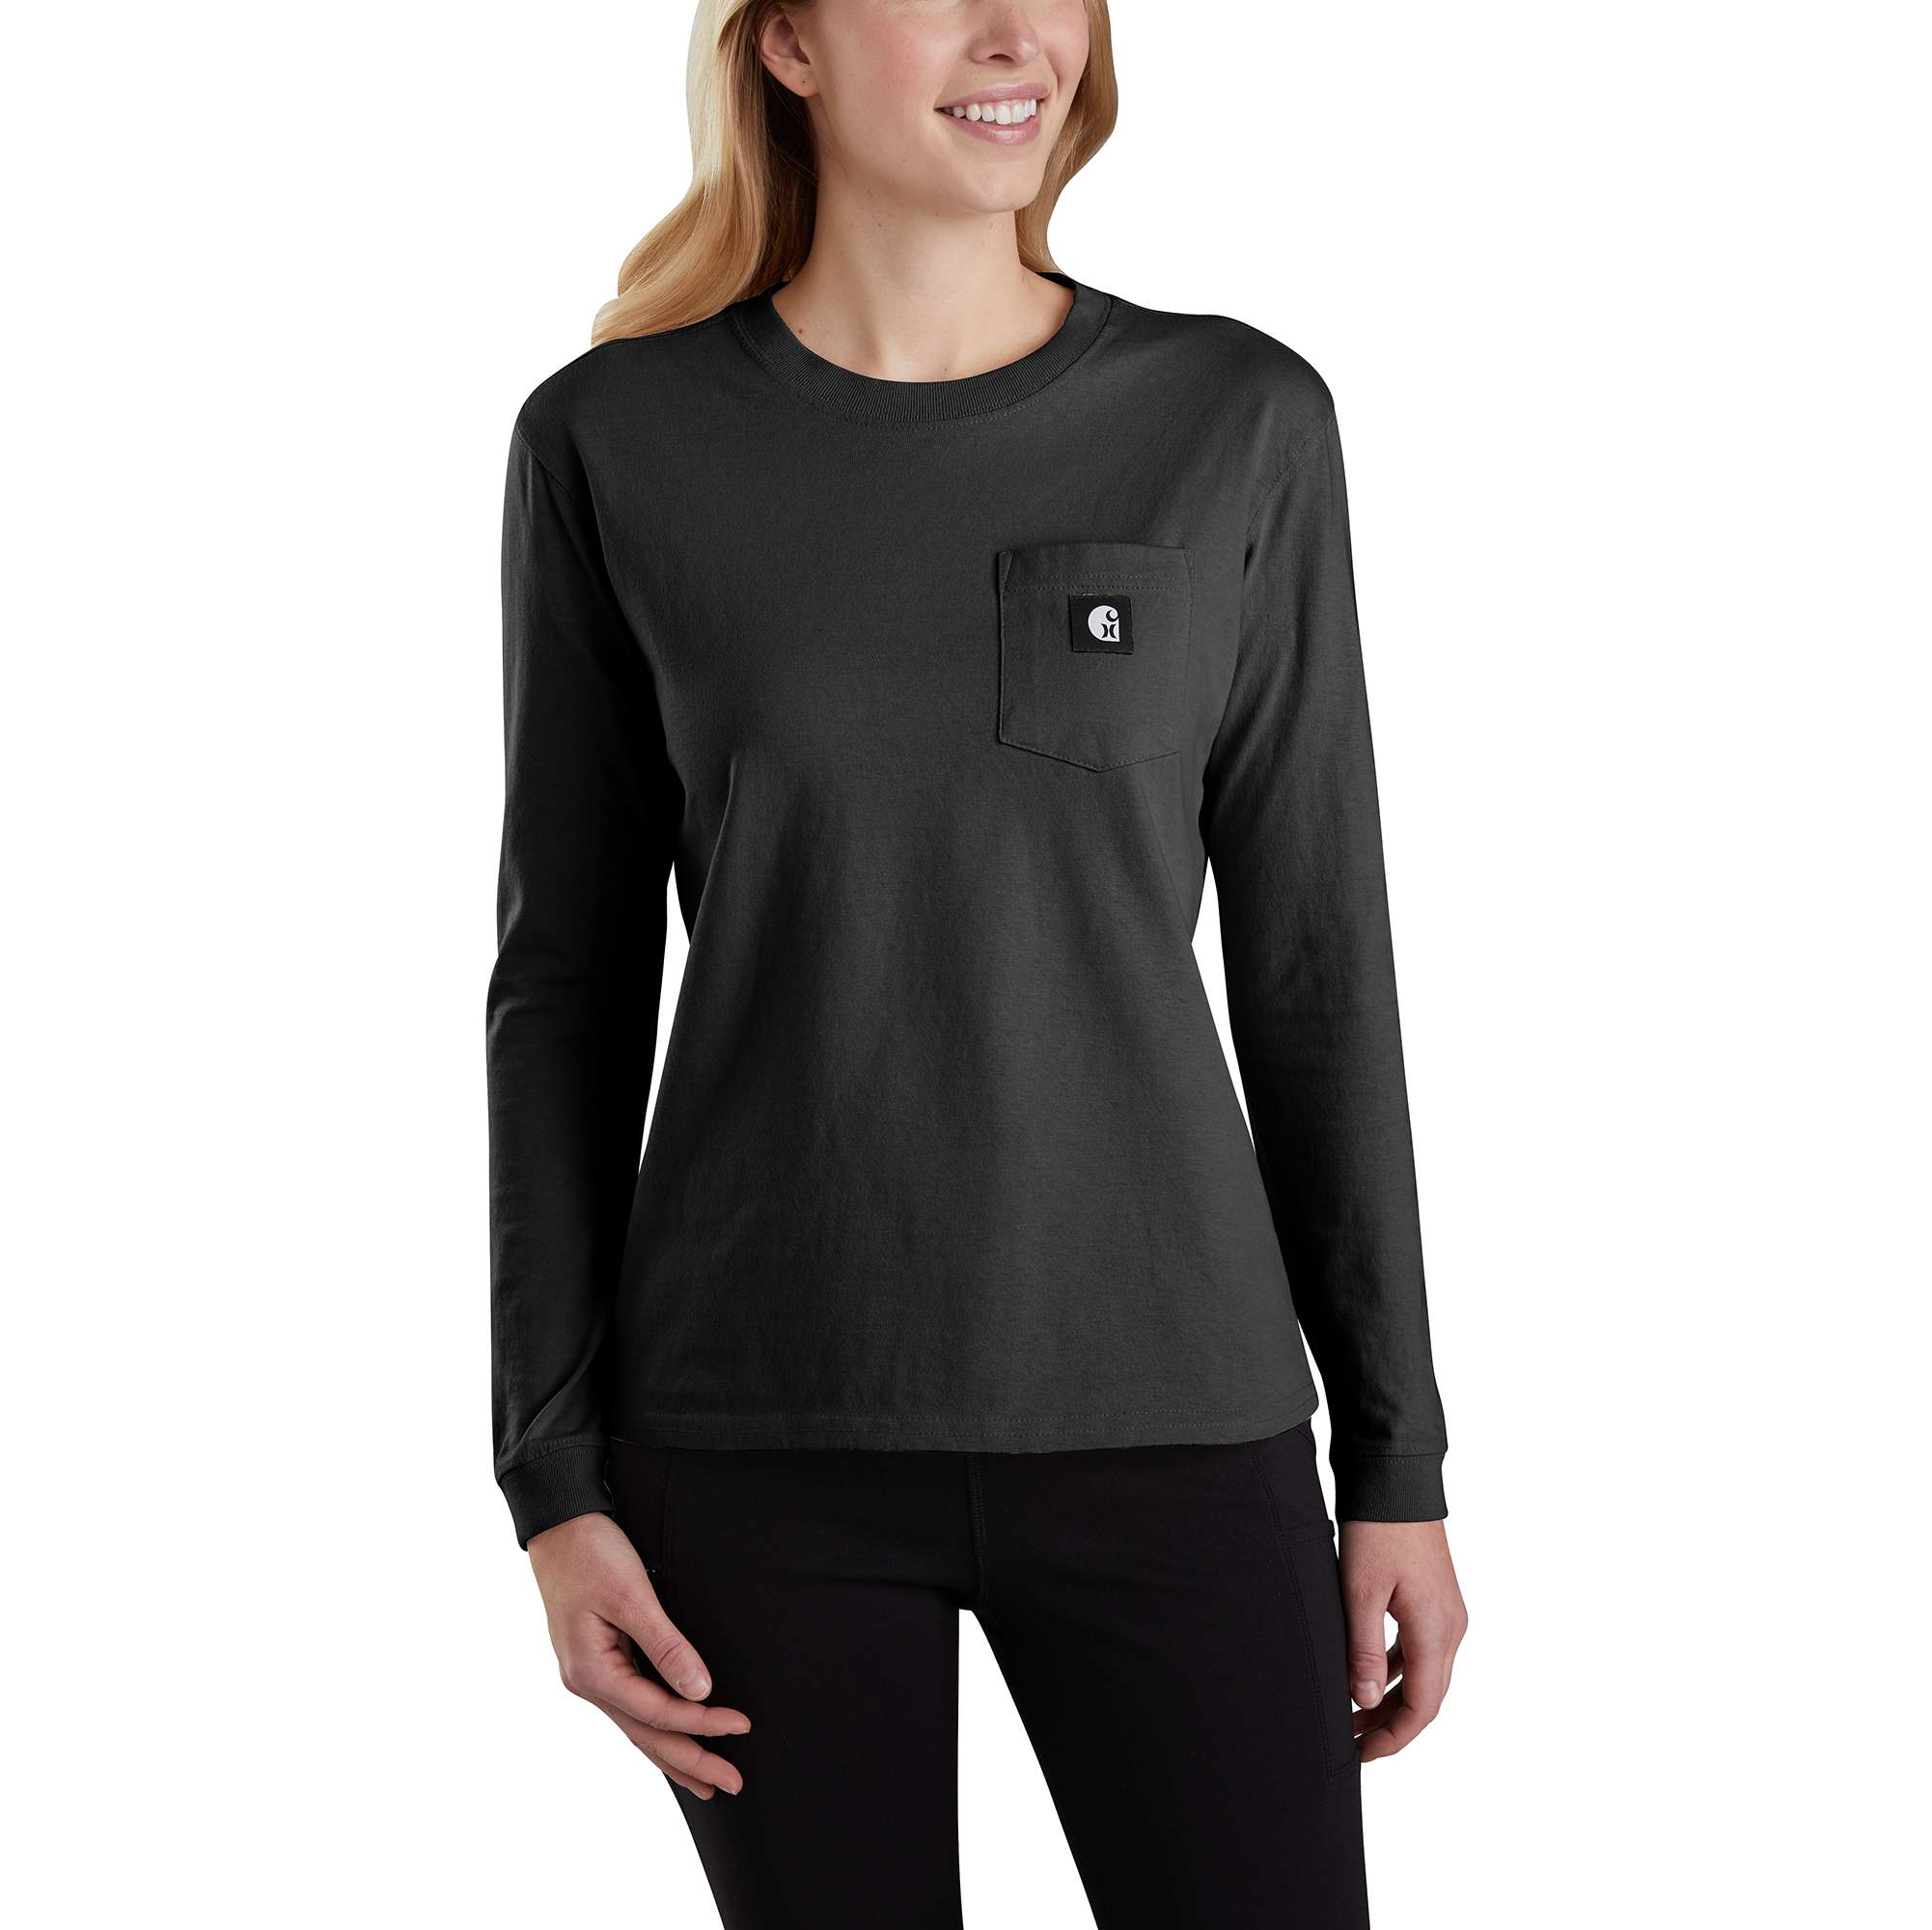 Carhartt Hurley x Carhartt Women's Long-Sleeve Top